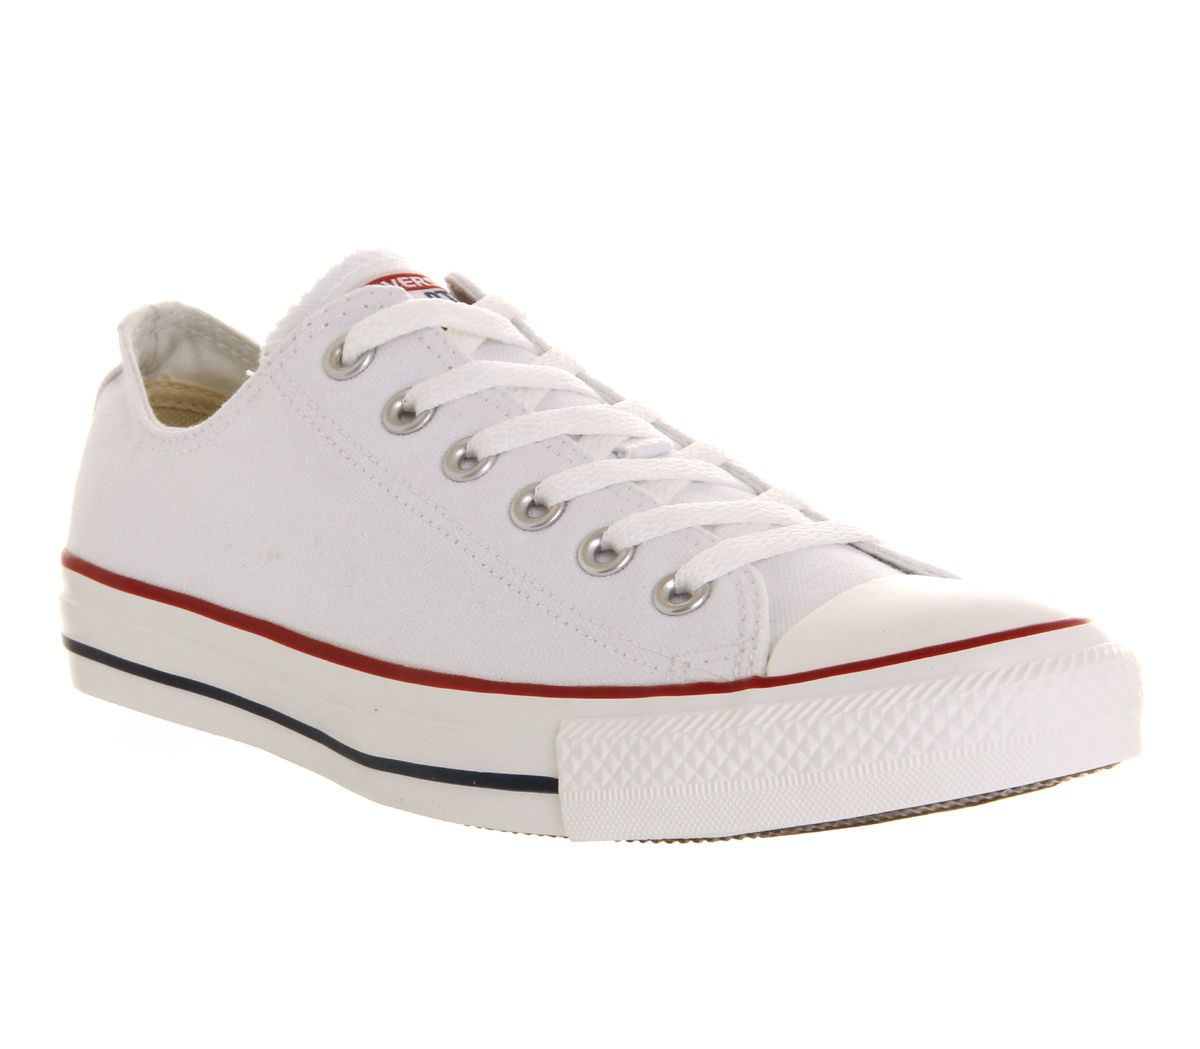 6ab259c007d Converse Converse All Star Low White Canvas - Unisex Sports ...